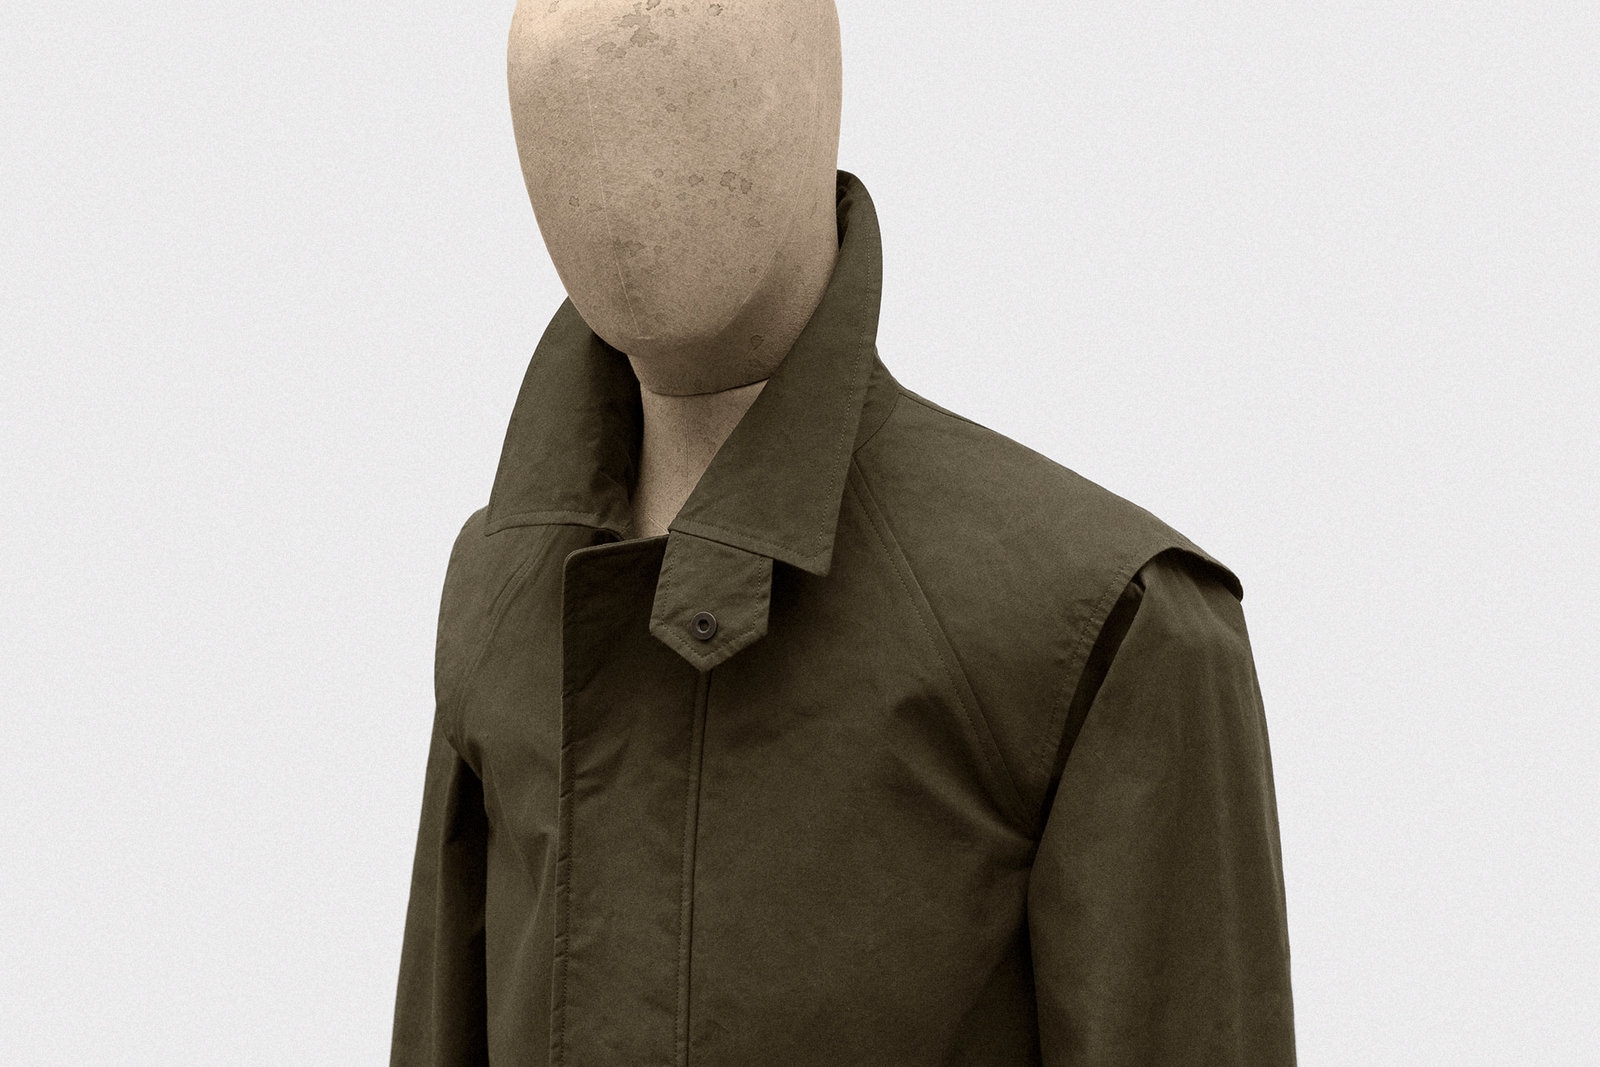 duster-coat-cotton-staywax-olive-drab-2@2x.jpeg